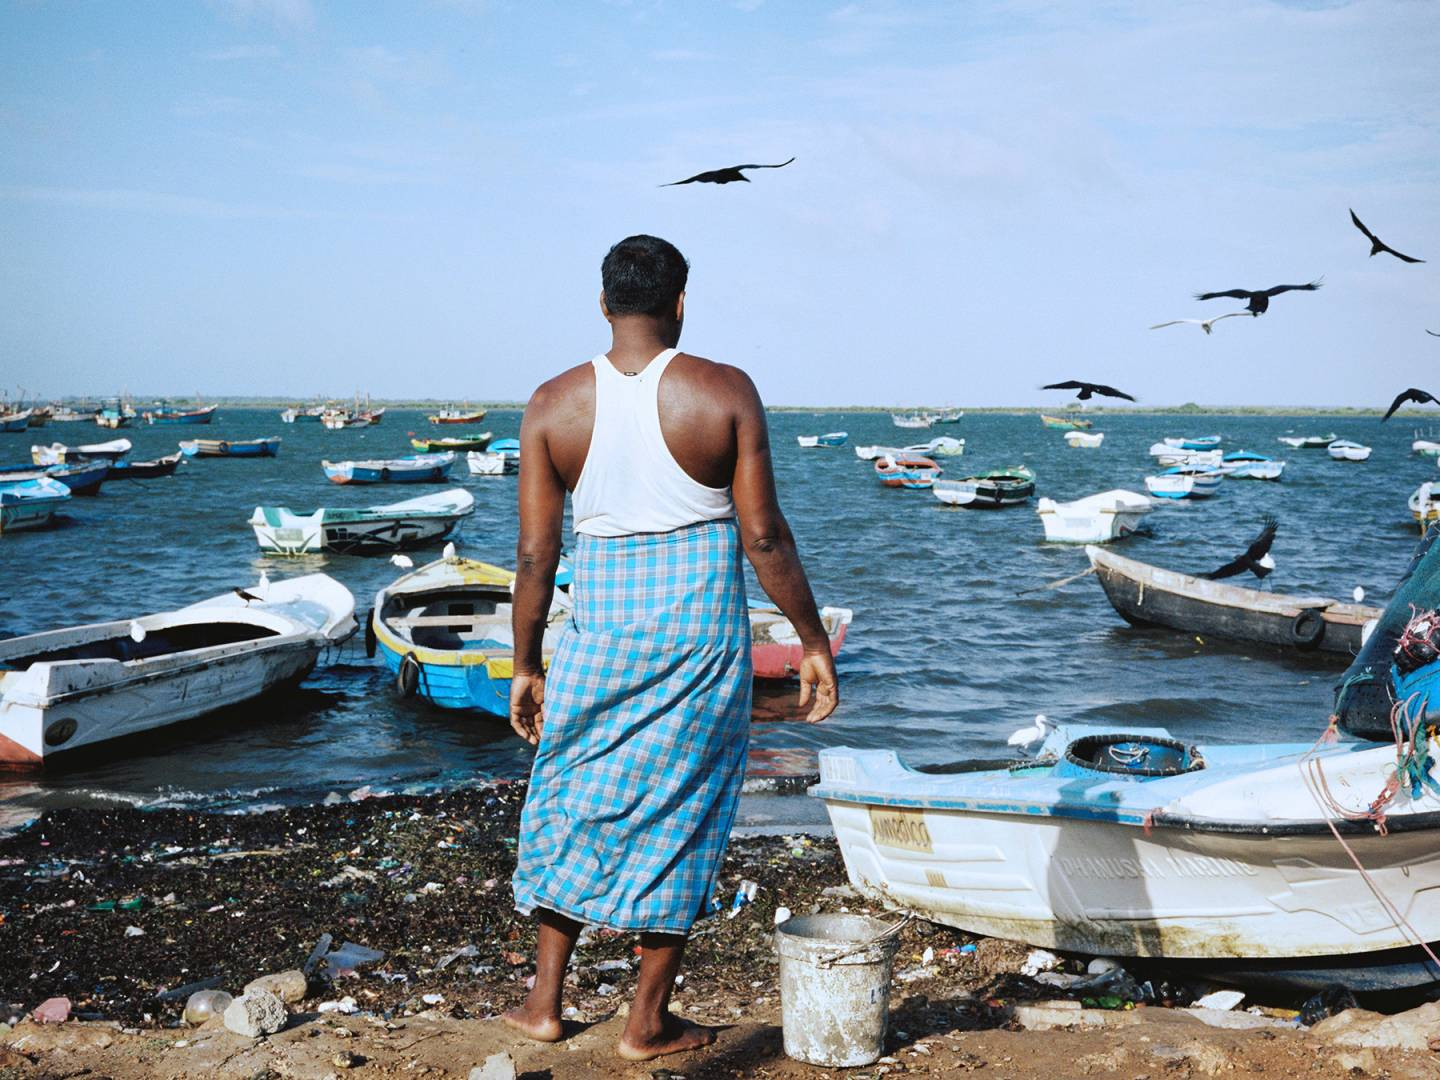 Lindsay Photo Essay | A Fishing Port Revived | Gurunagar, Sri Lanka